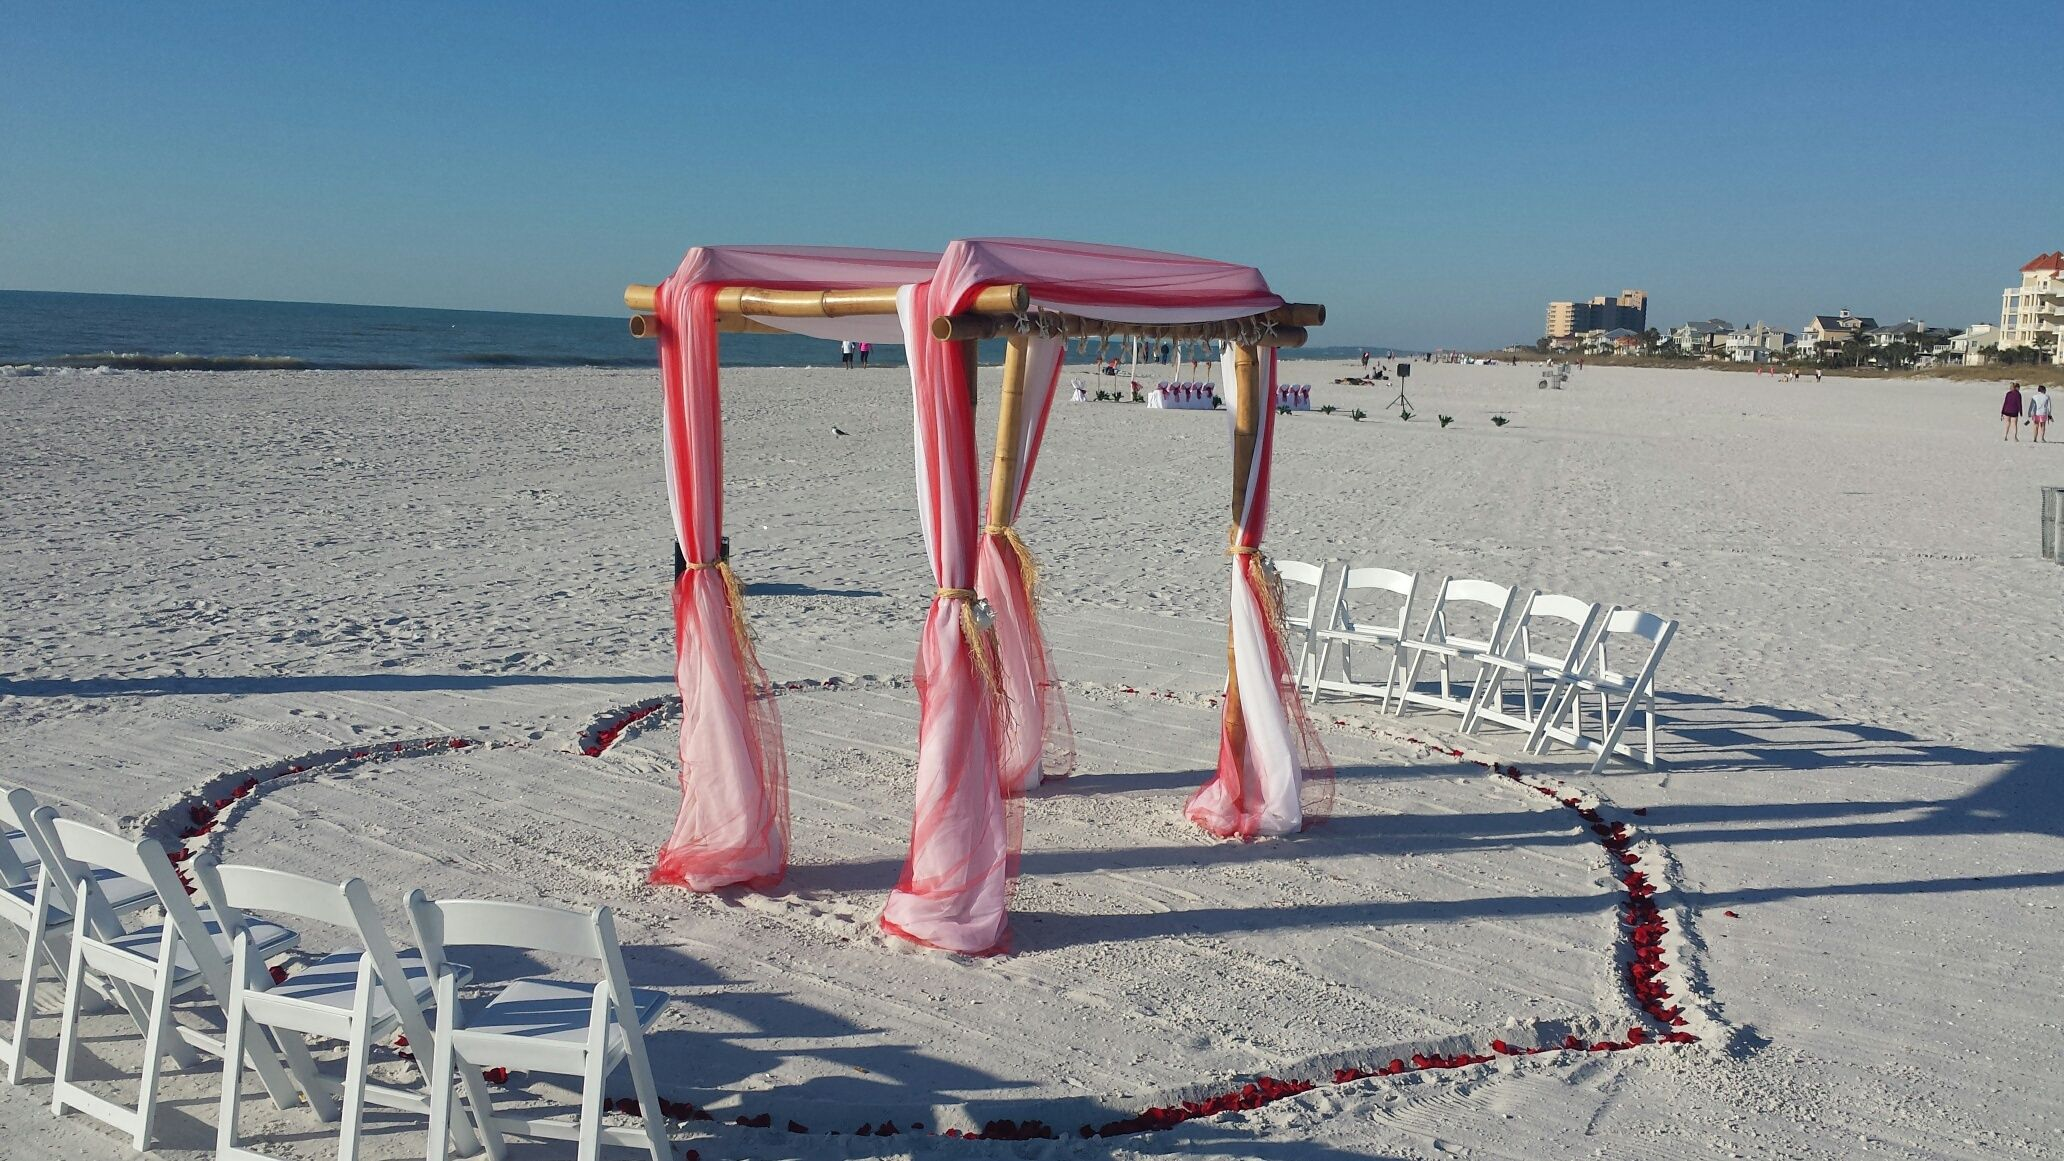 Beach wedding venues in san diego  Valantines day set up with fresh rose petals filling the heart